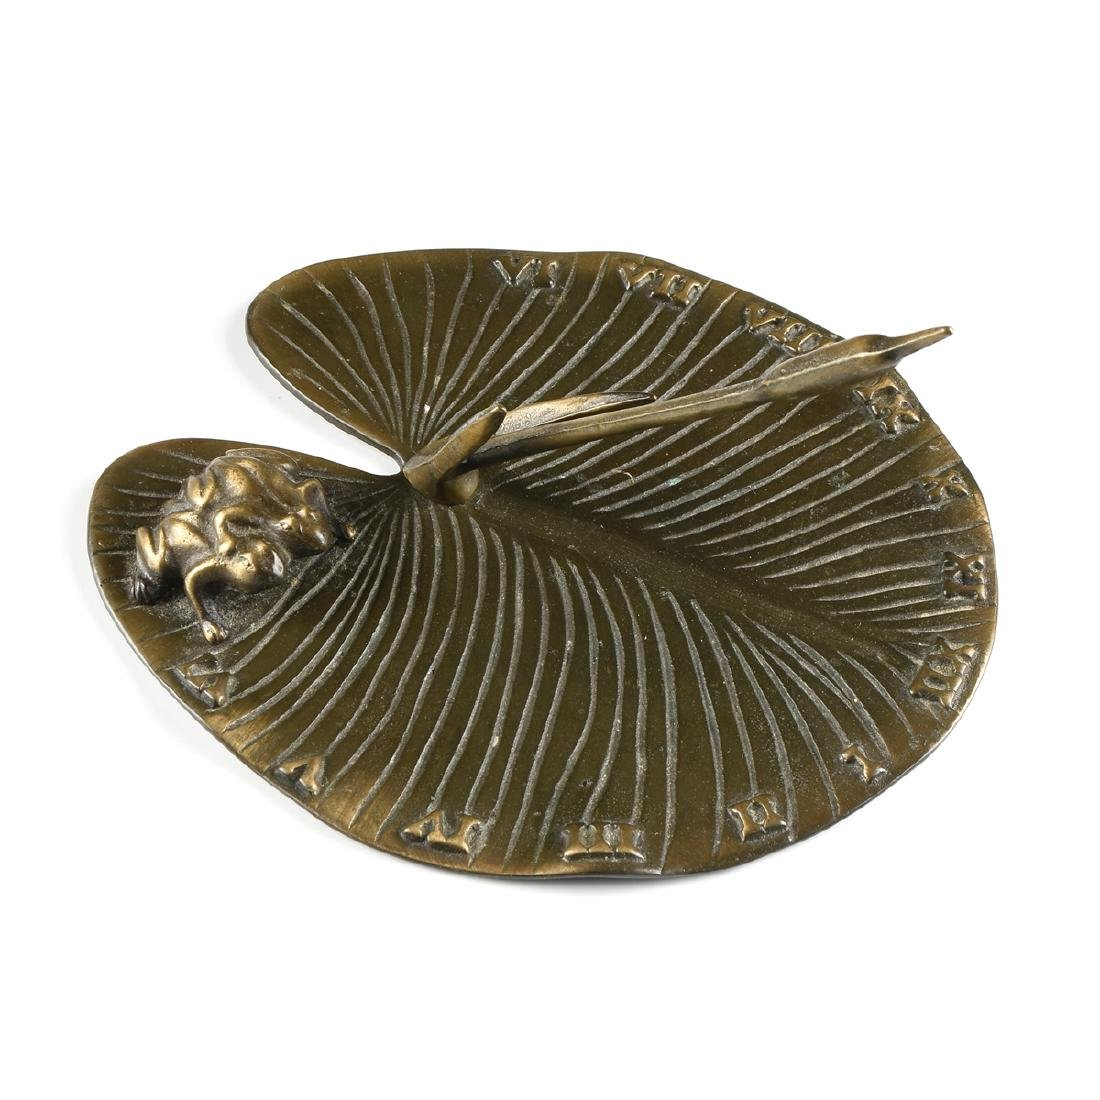 A PATINATED BRONZE LILLY PAD AND FROG SUNDIAL, LATE